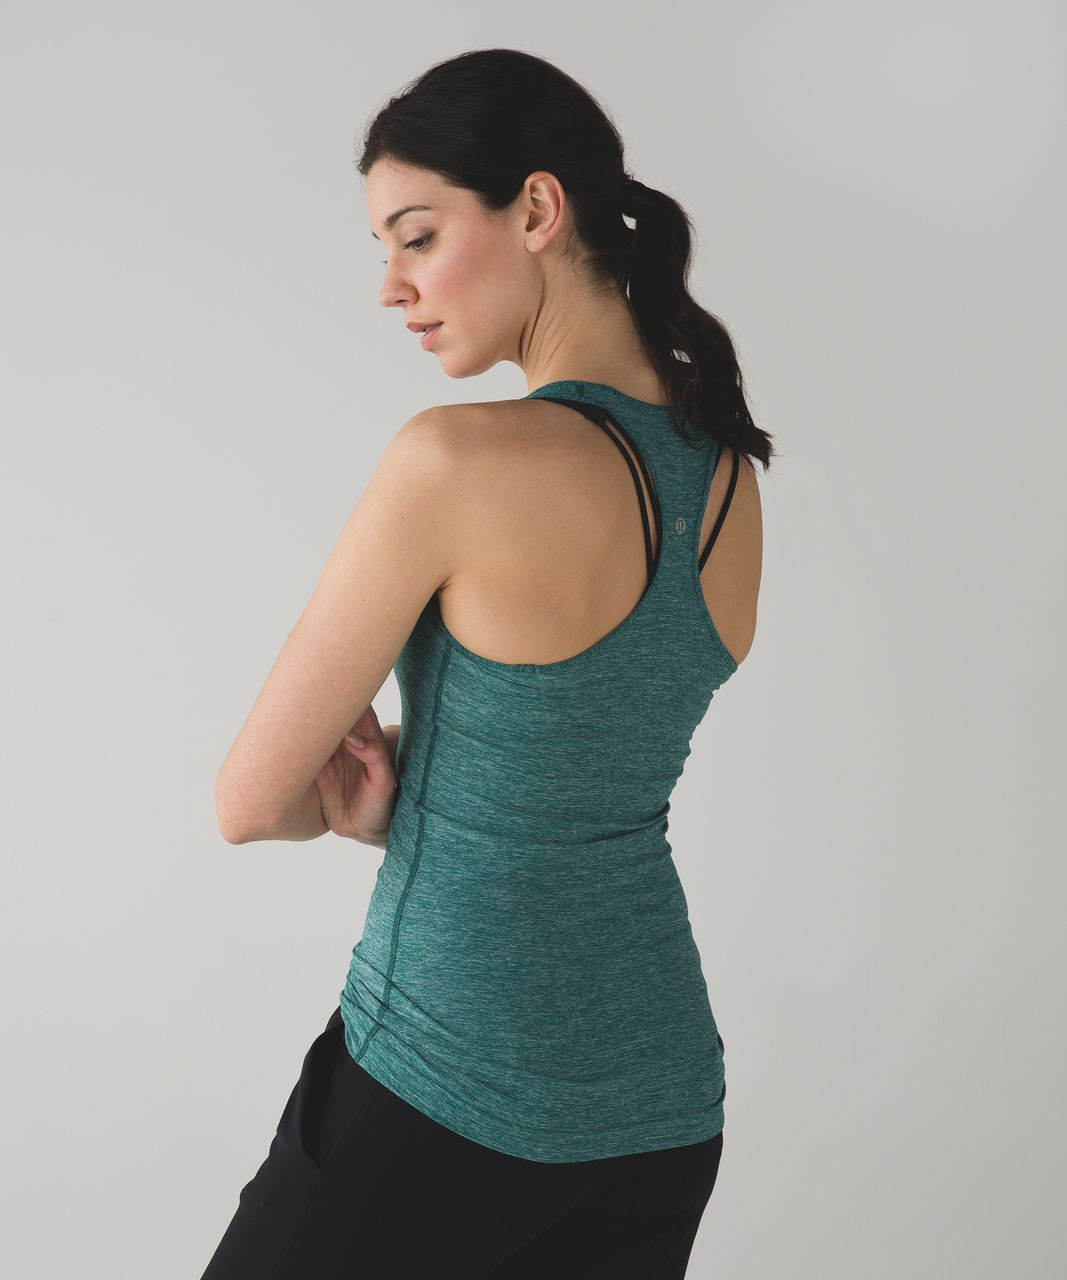 Lululemon Cool Racerback - Heathered Forage Teal